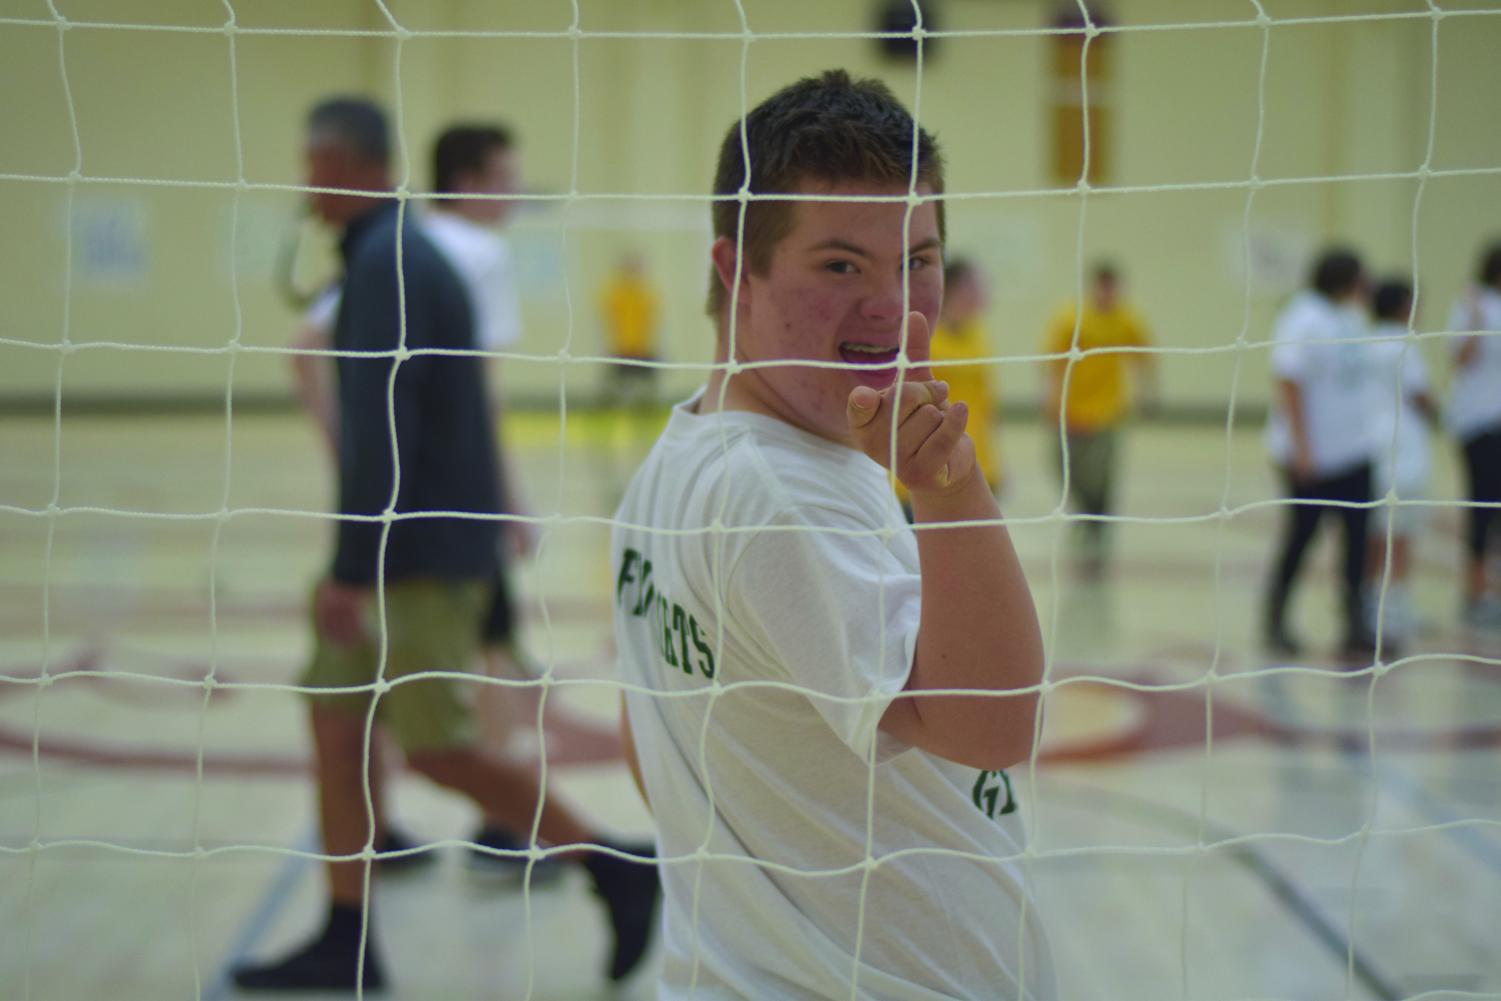 Sophomore Blake Rudig defends his team's goal during the Unified Sports event Friday.